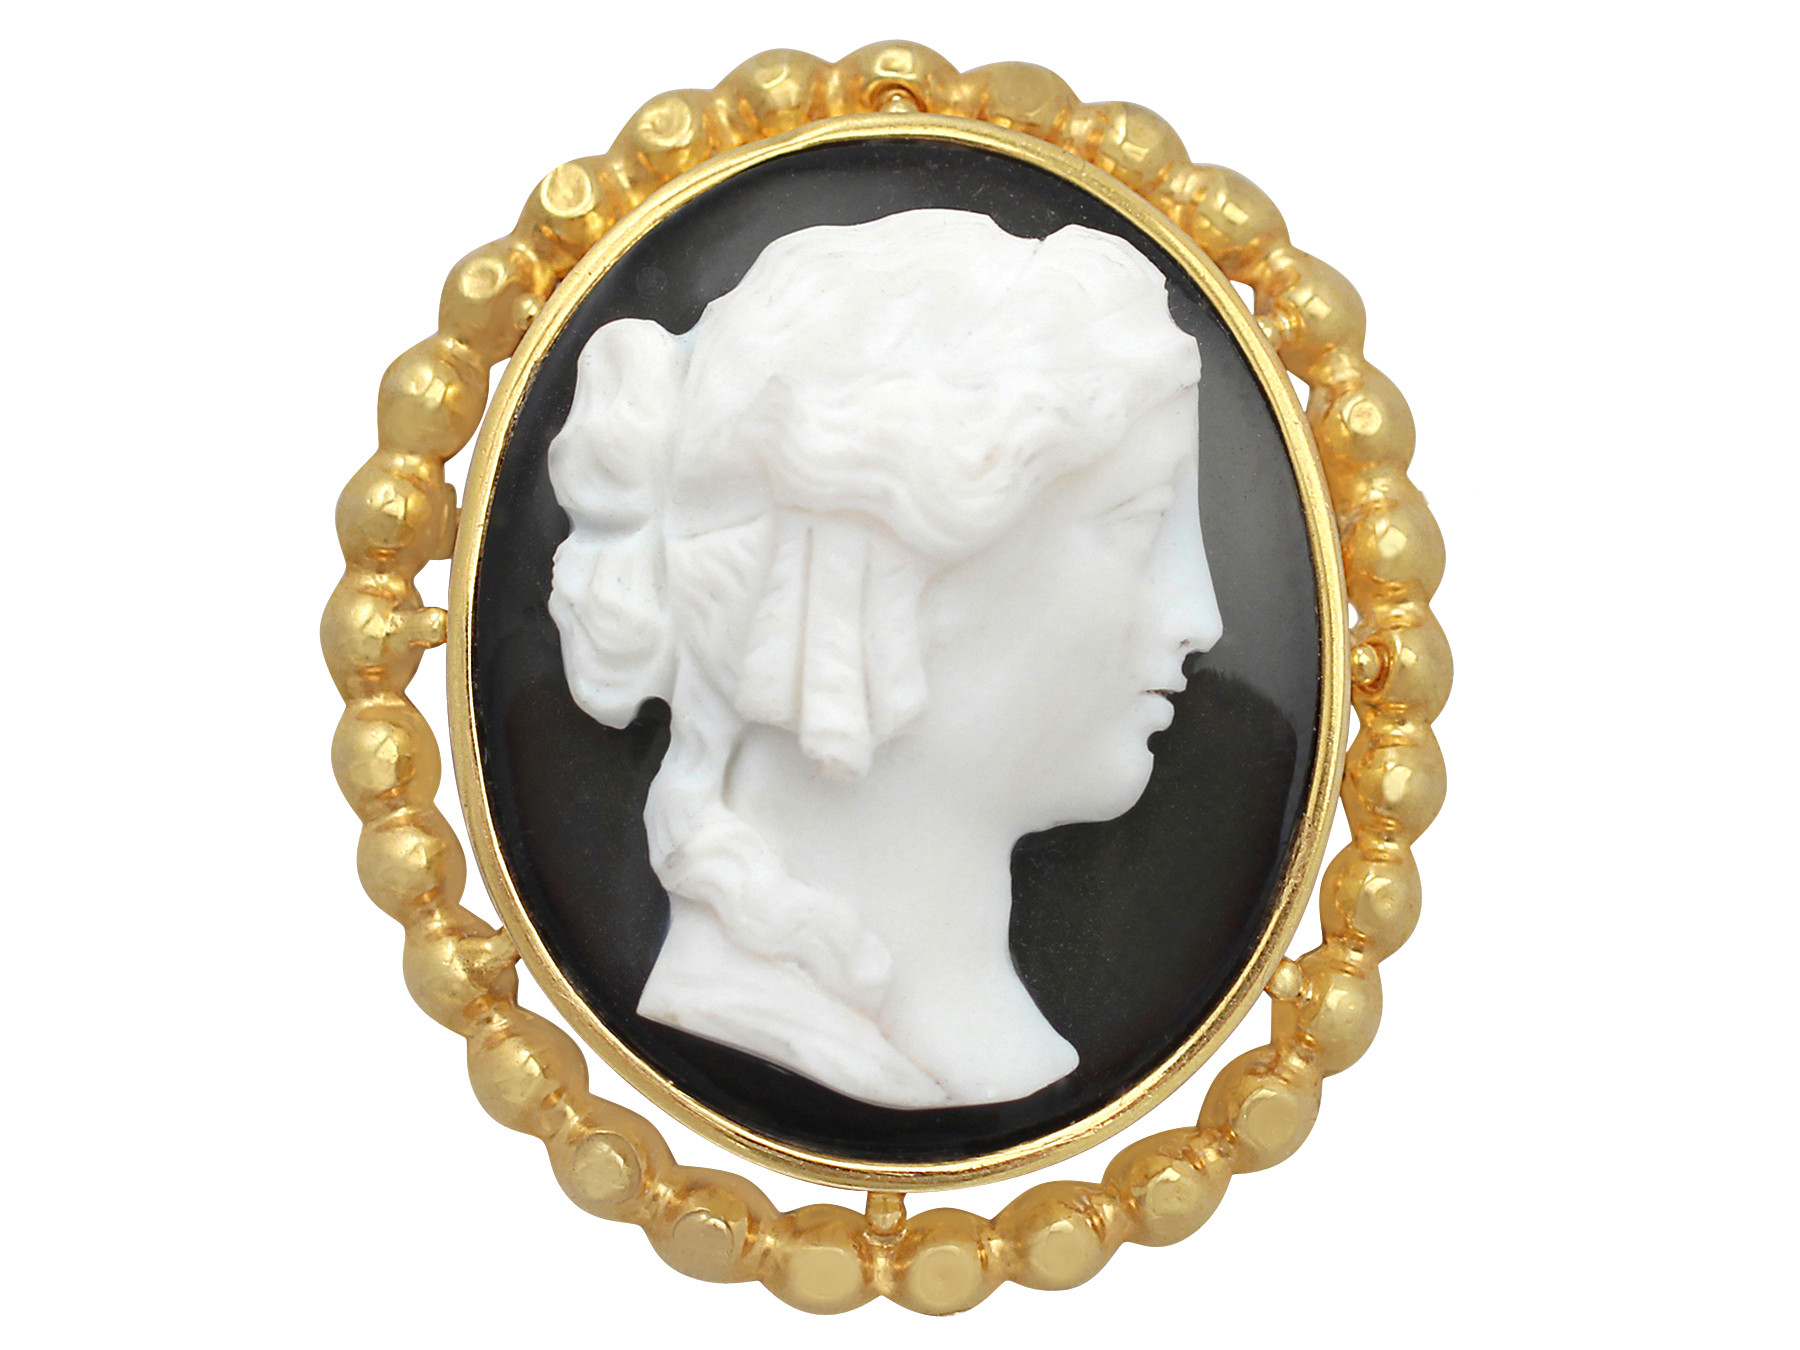 antique french cameo brooch / pendant in 18 ct yellow gold aeojfag